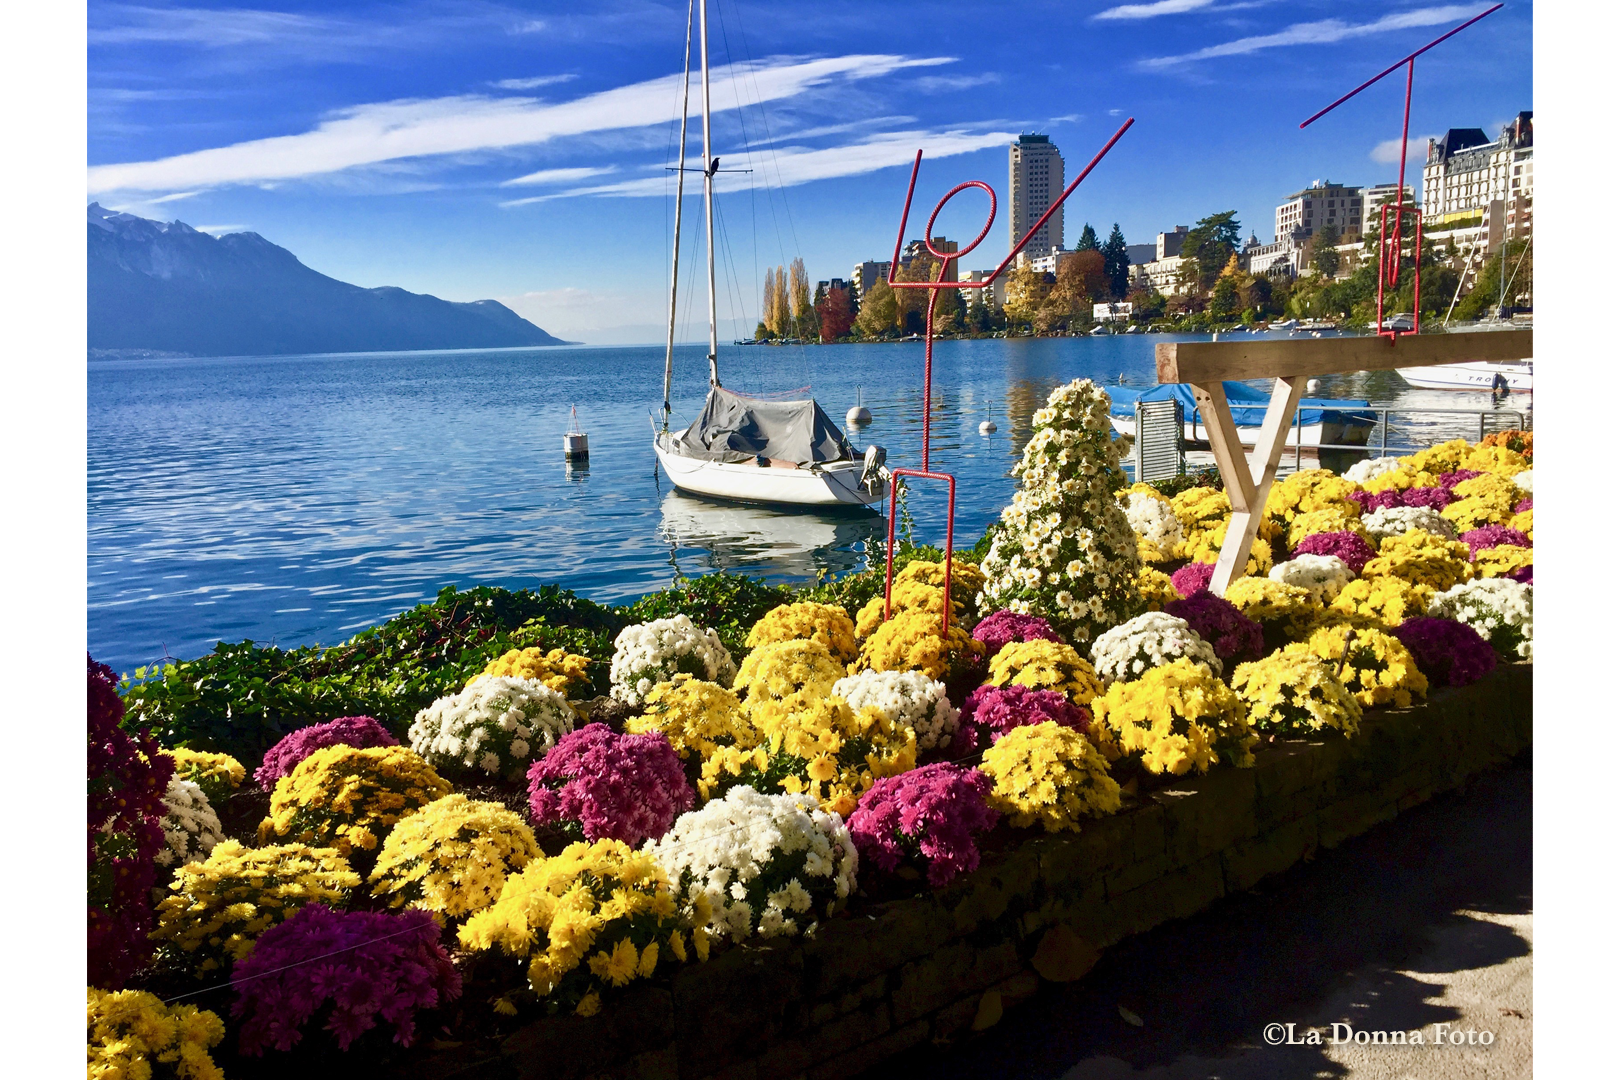 Fall Mums on Lake Geneva-Switzerland - Italian Landscape Photography - La Donna Foto Houston, TX 77007